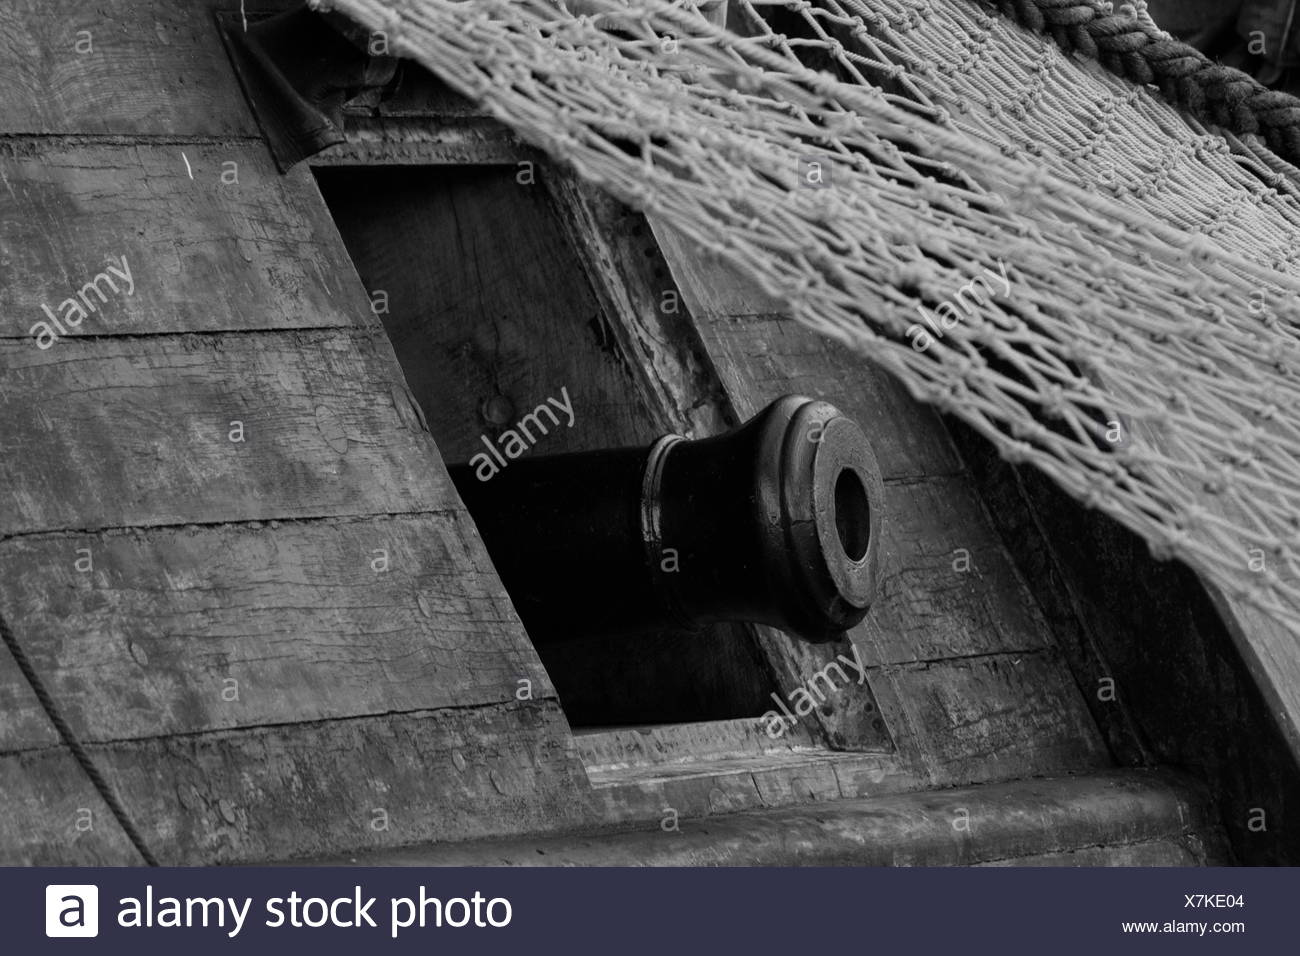 Salute cannon looking out of the porthole of a tall ship - Stock Image